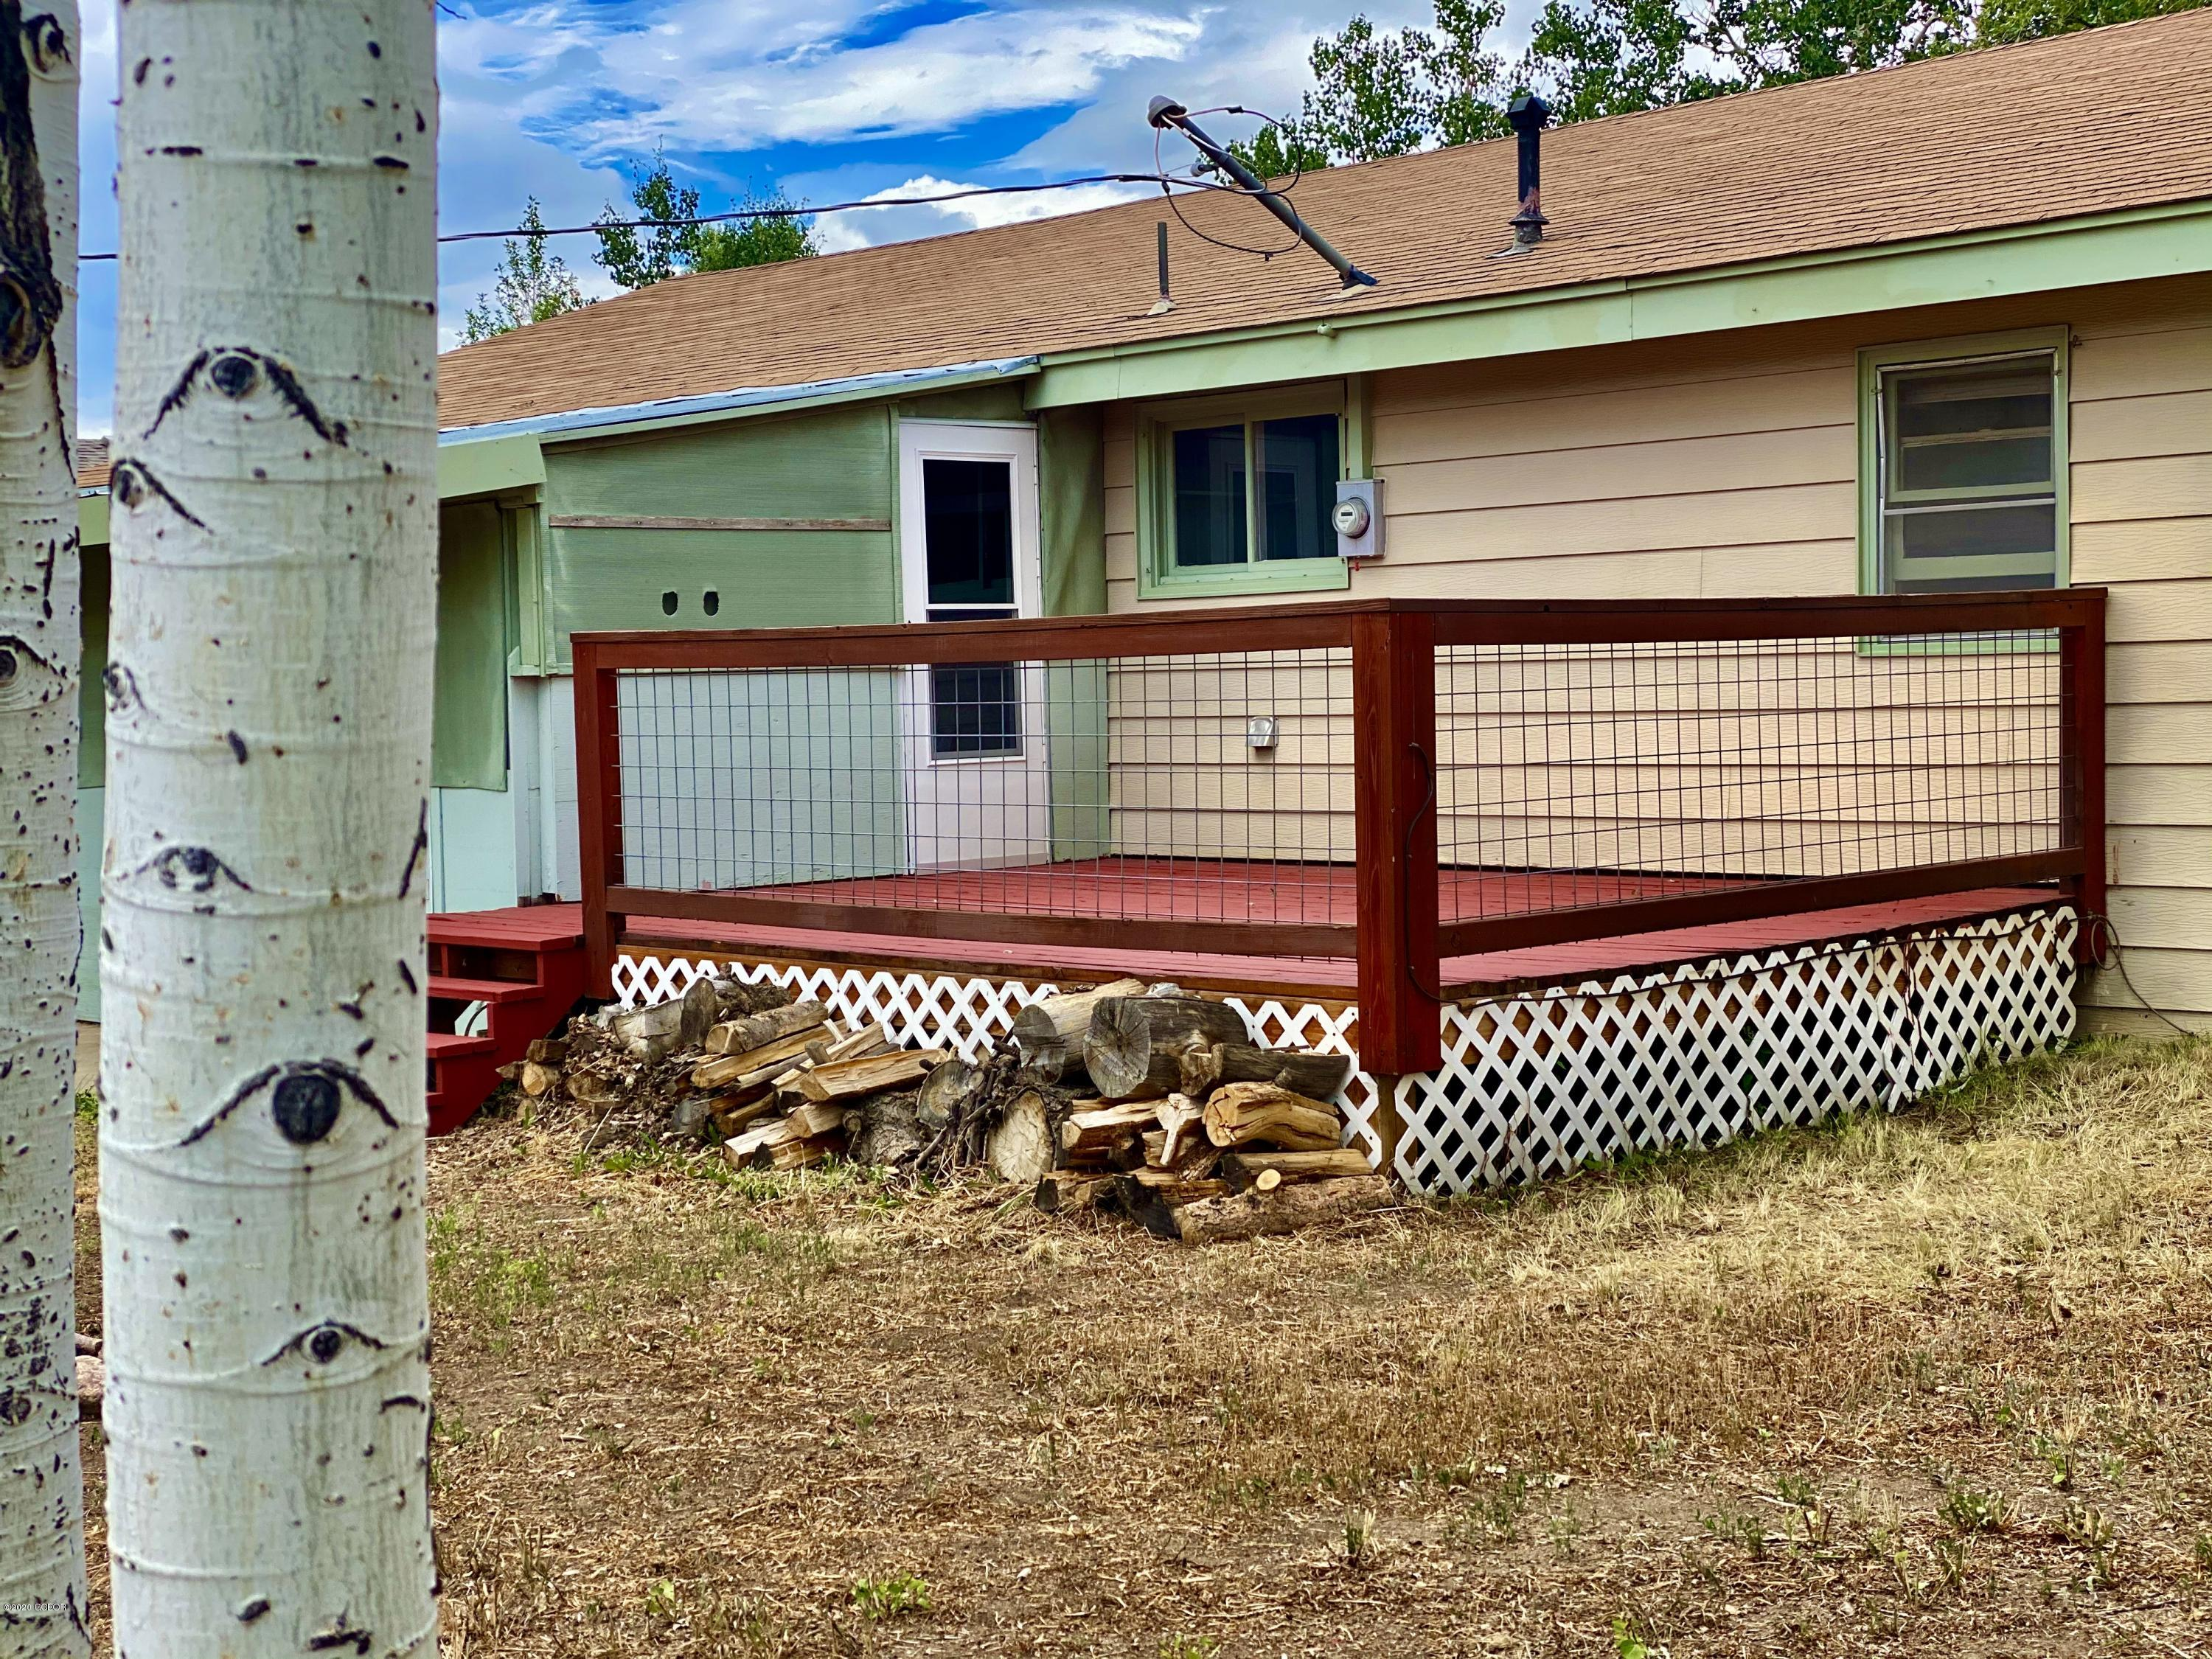 MLS# 20-1062 - 312 S 8th Street #, Kremmling, CO 80459